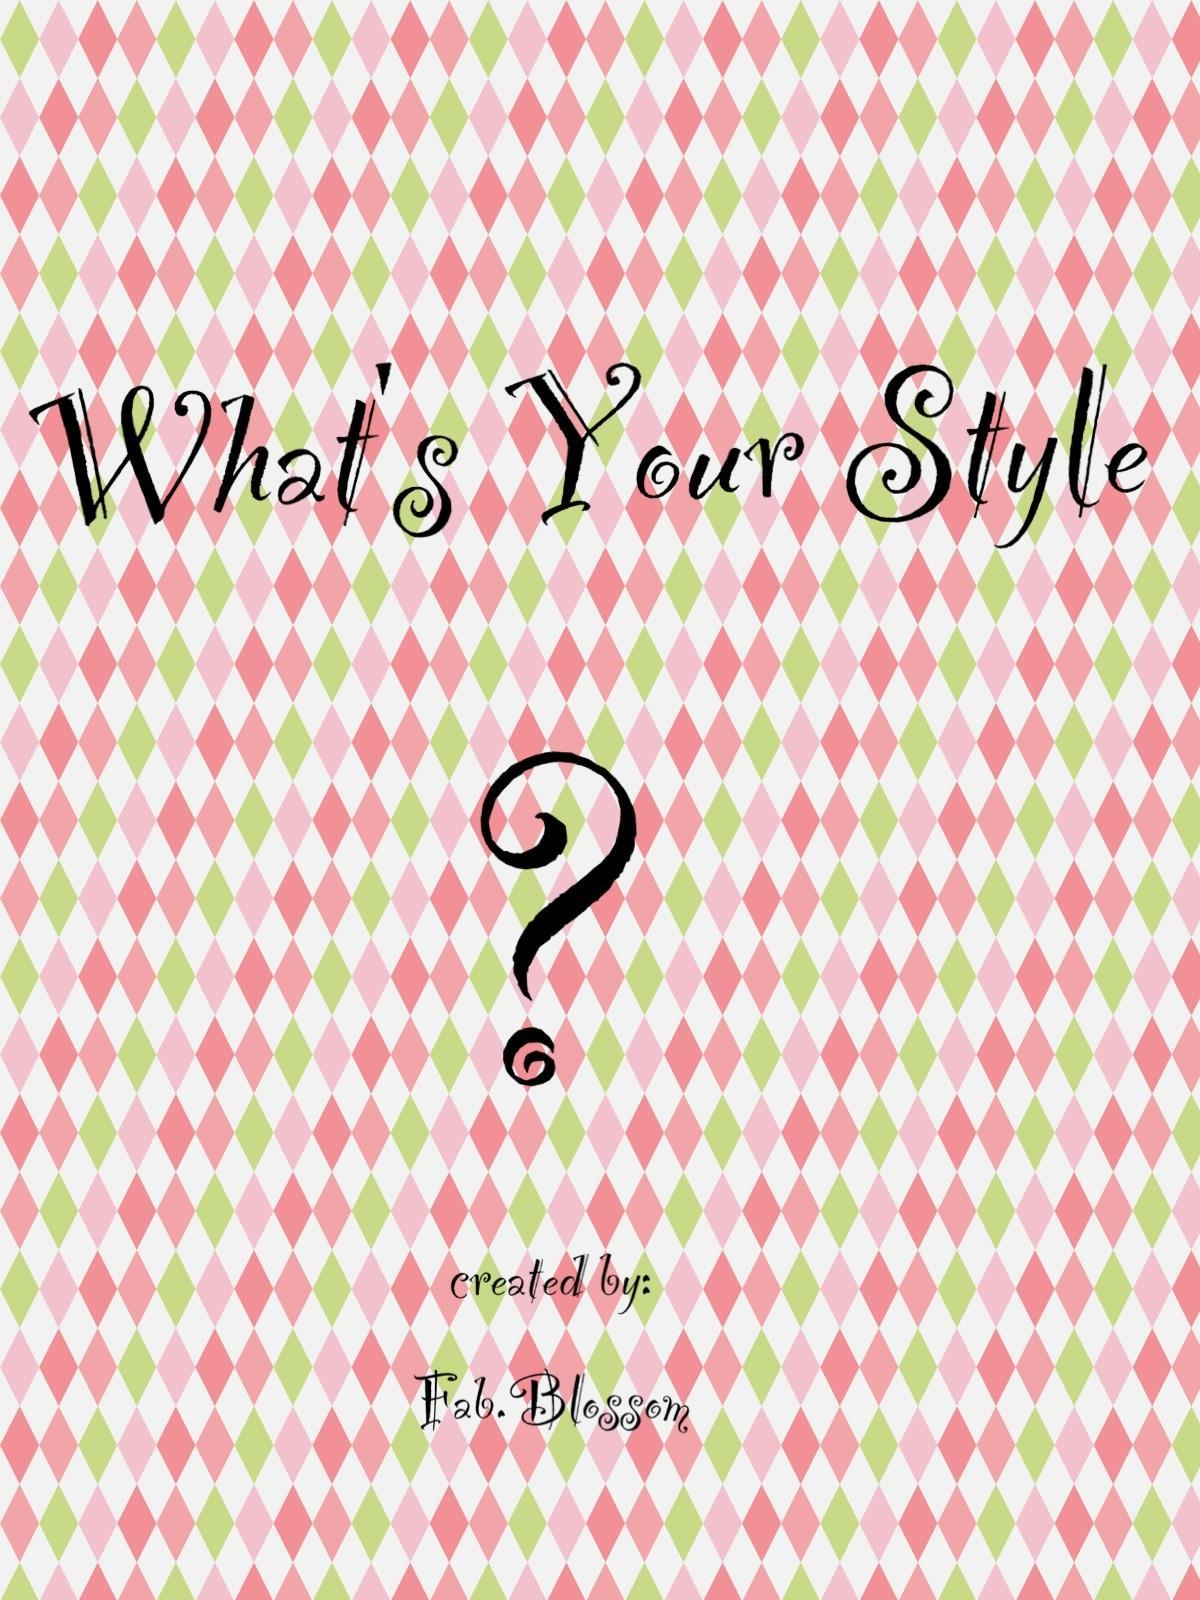 What's your style? (1)